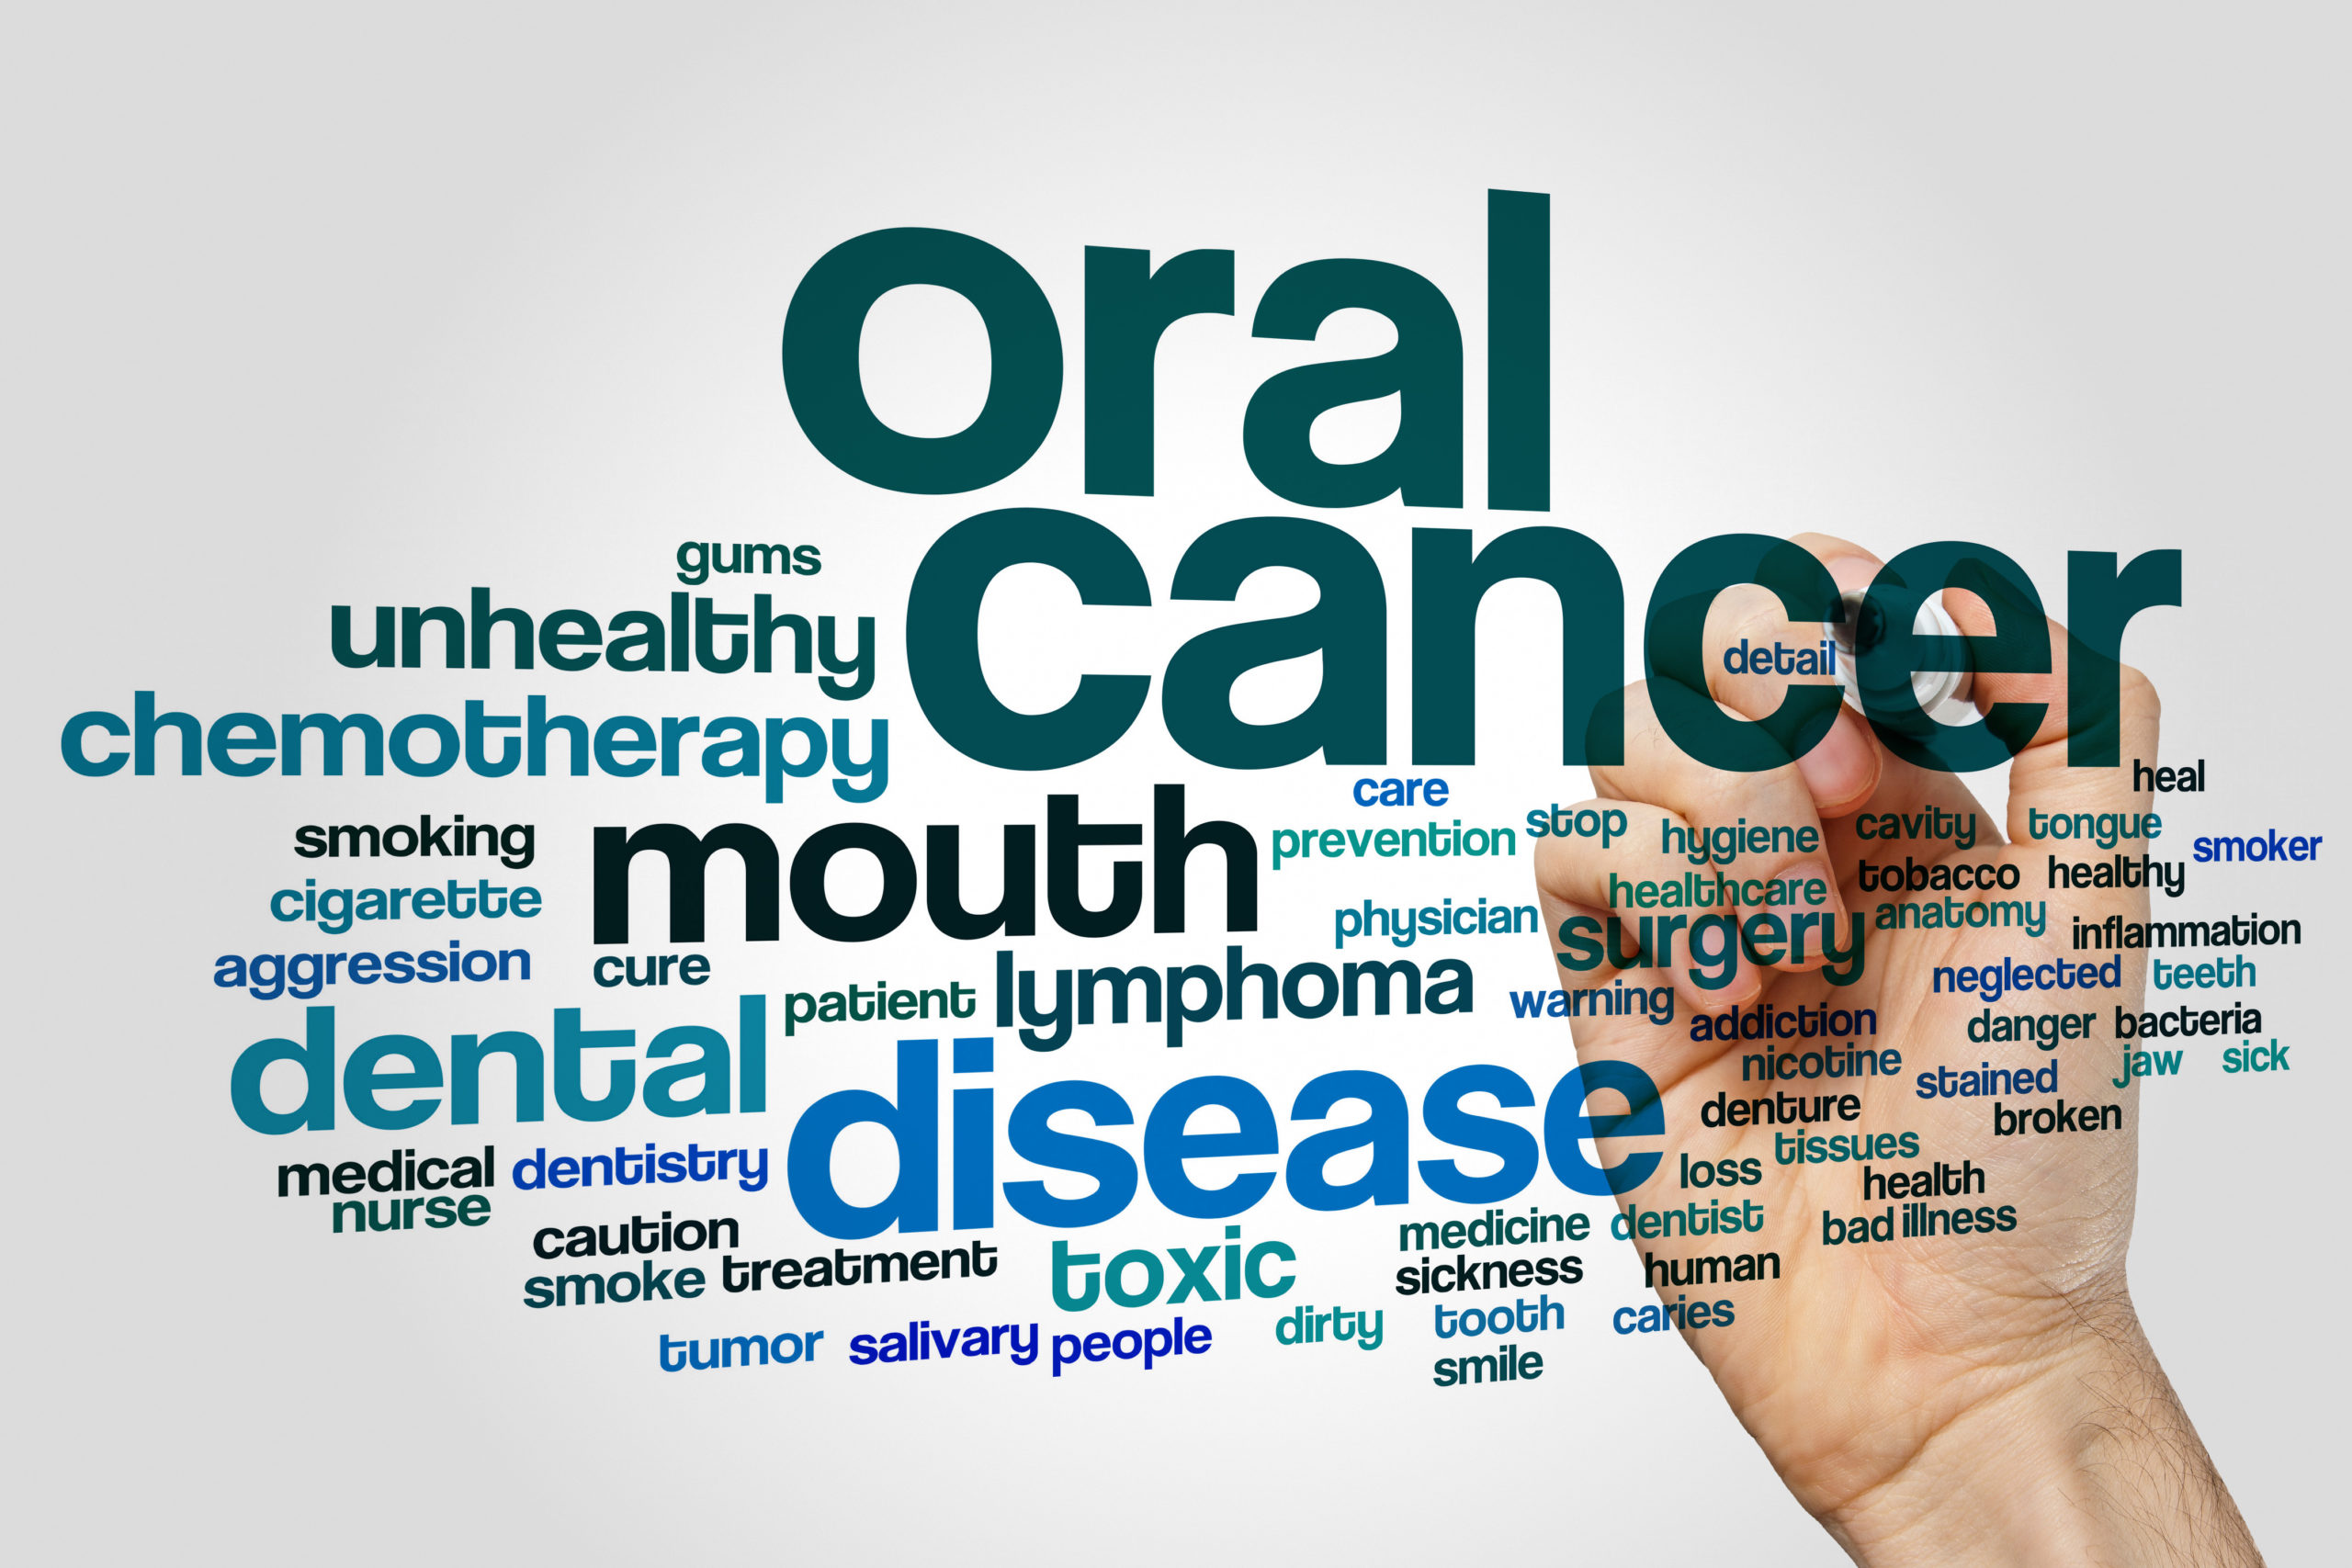 What Are The Risk Factors That Can Lead To Oral Cancer? kensington court clinic